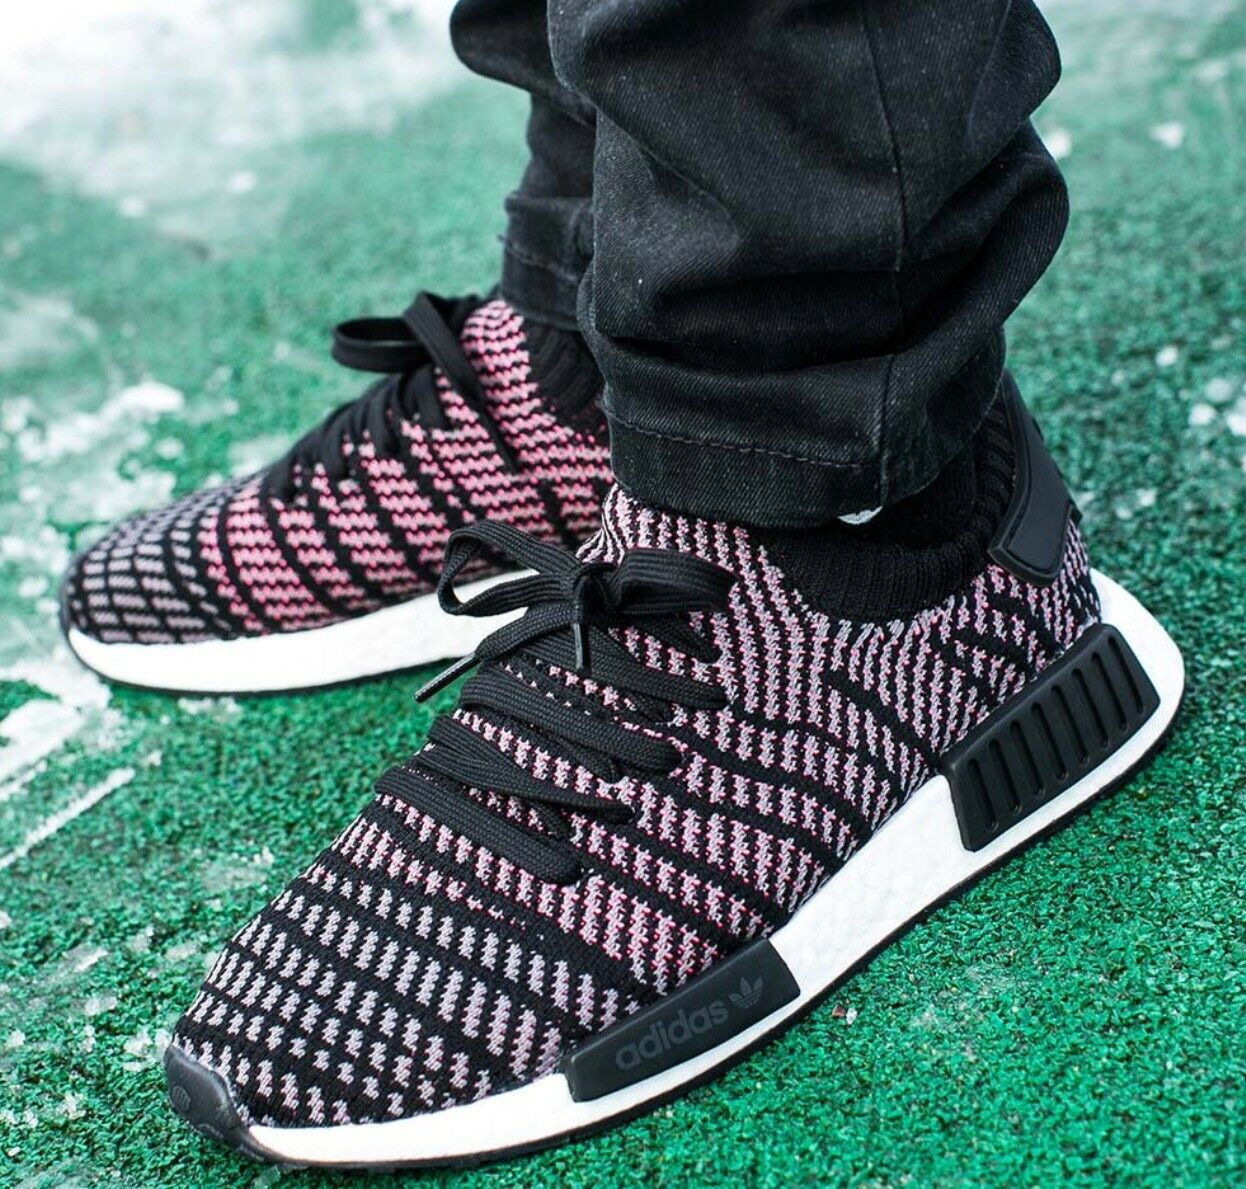 DS NIB MENS ADIDAS NMD_R1 STLT PRIMEKNIT CQ2386 SHOES RUNNER SZ 13 FREE SHIP AIR